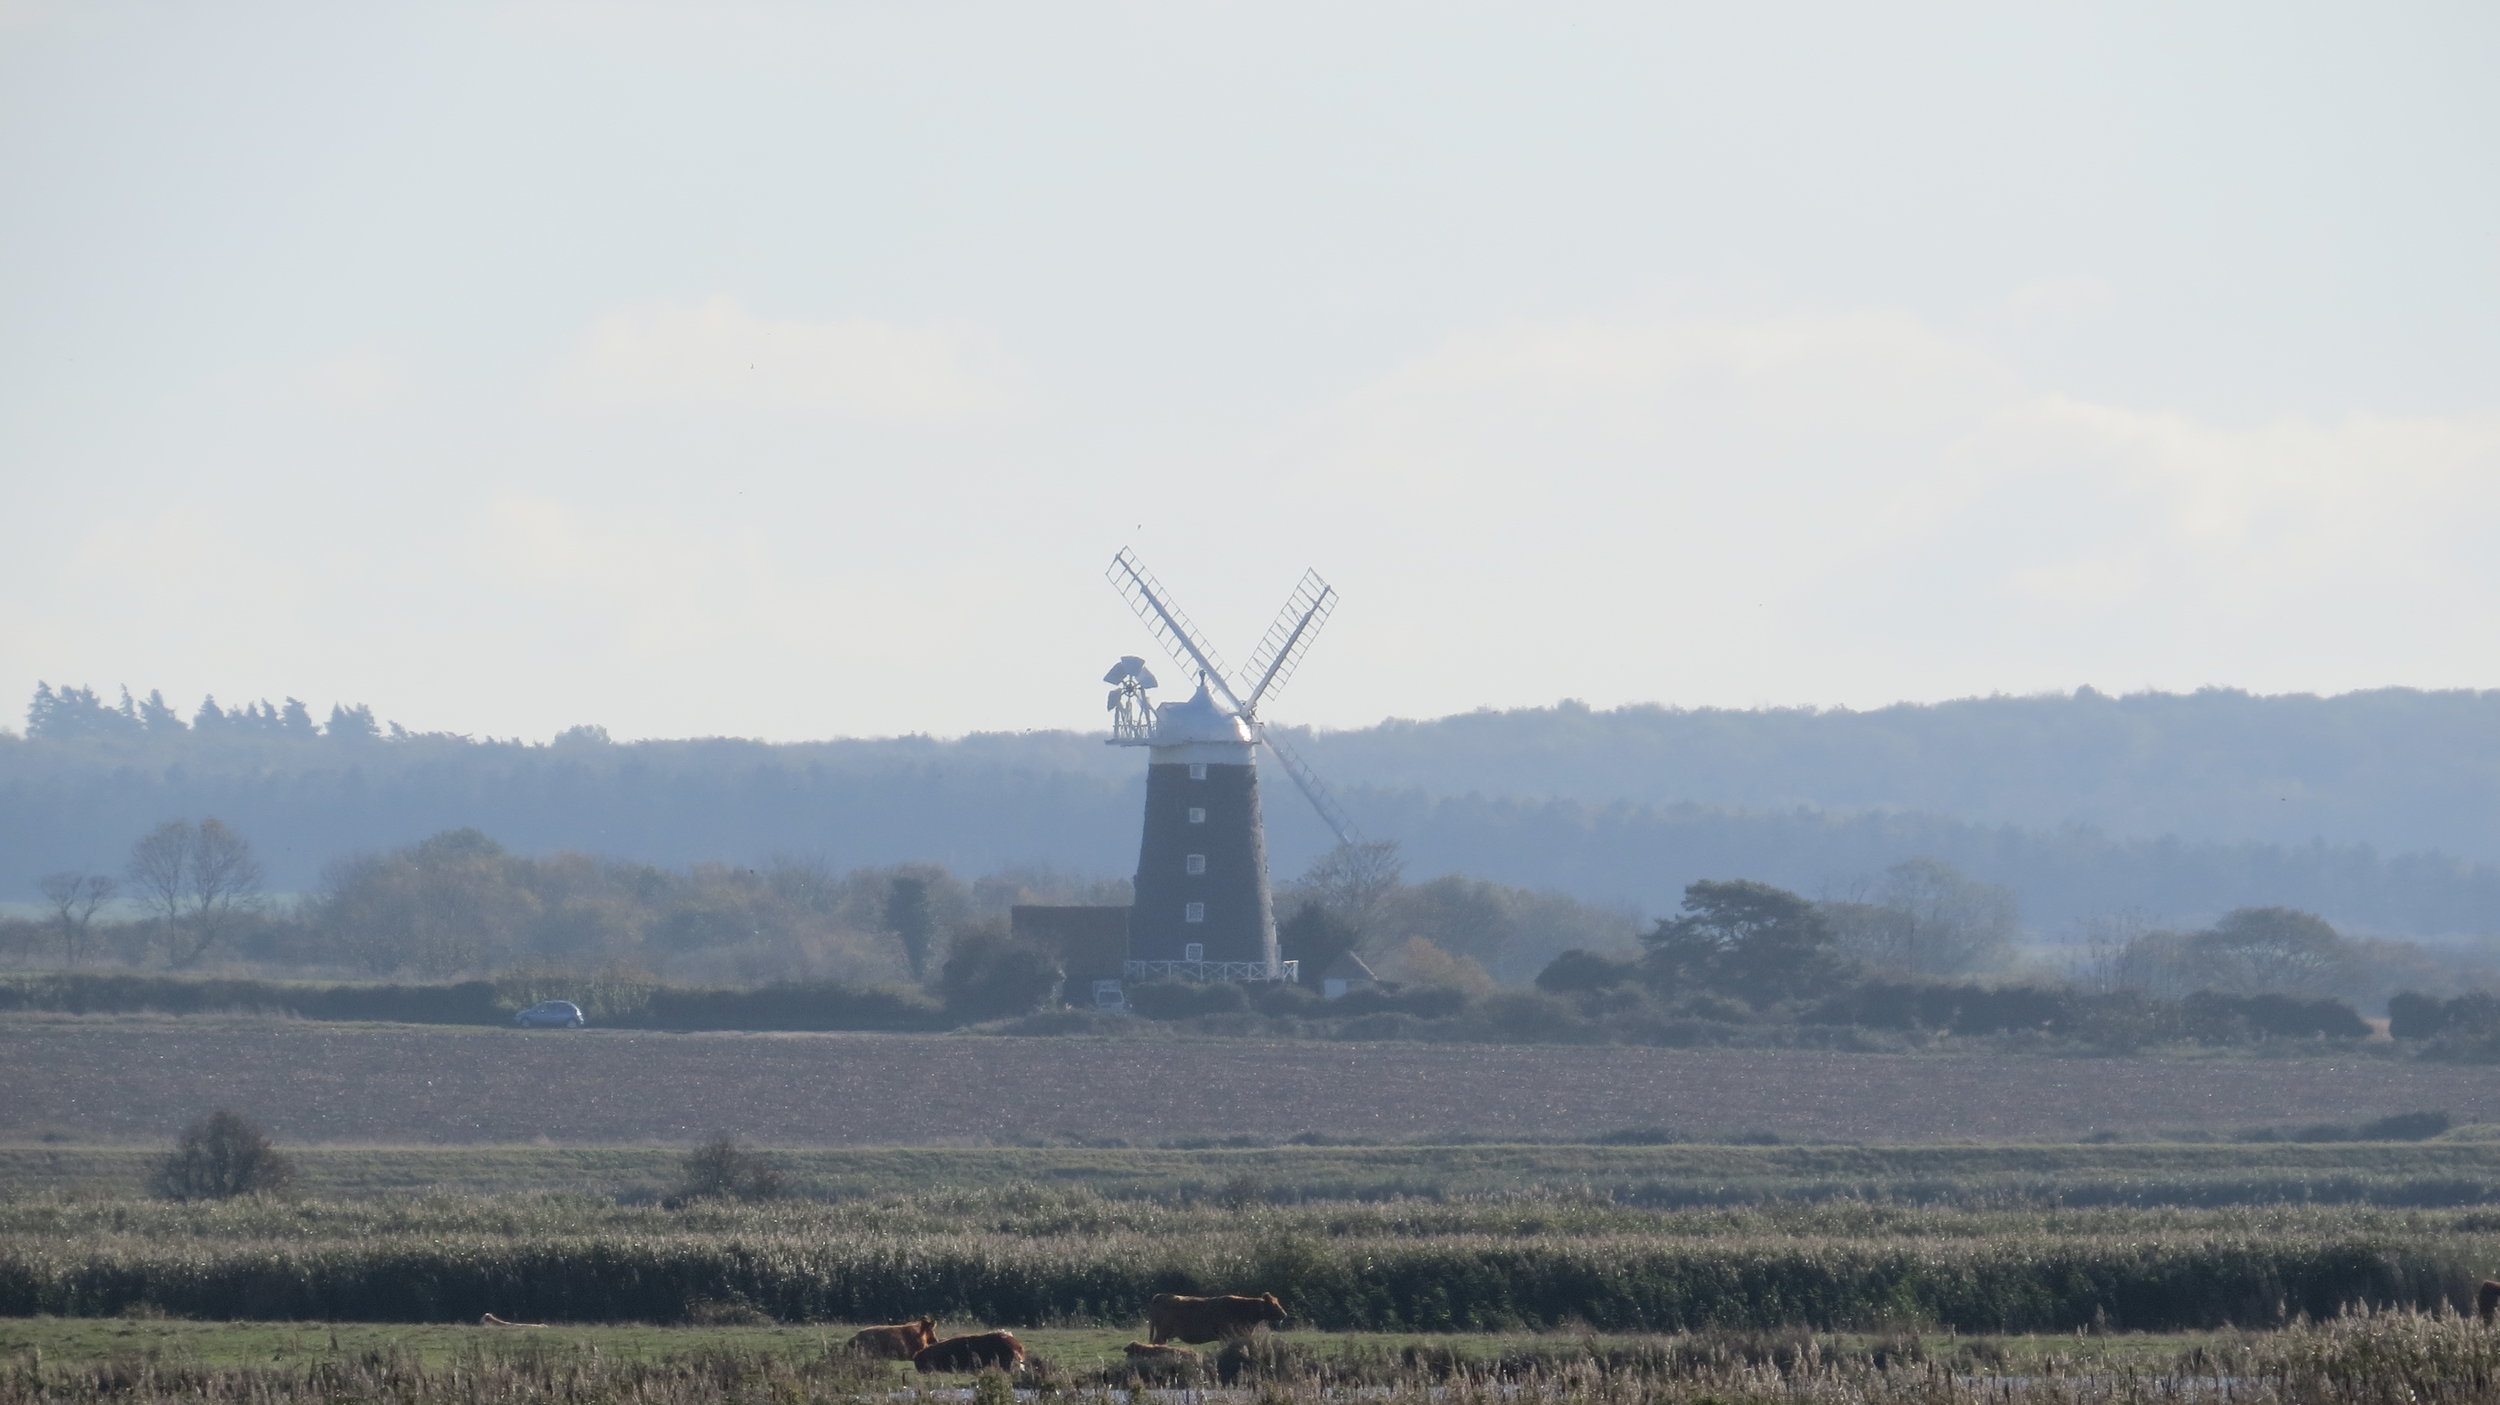 Burnham Overy Mill I